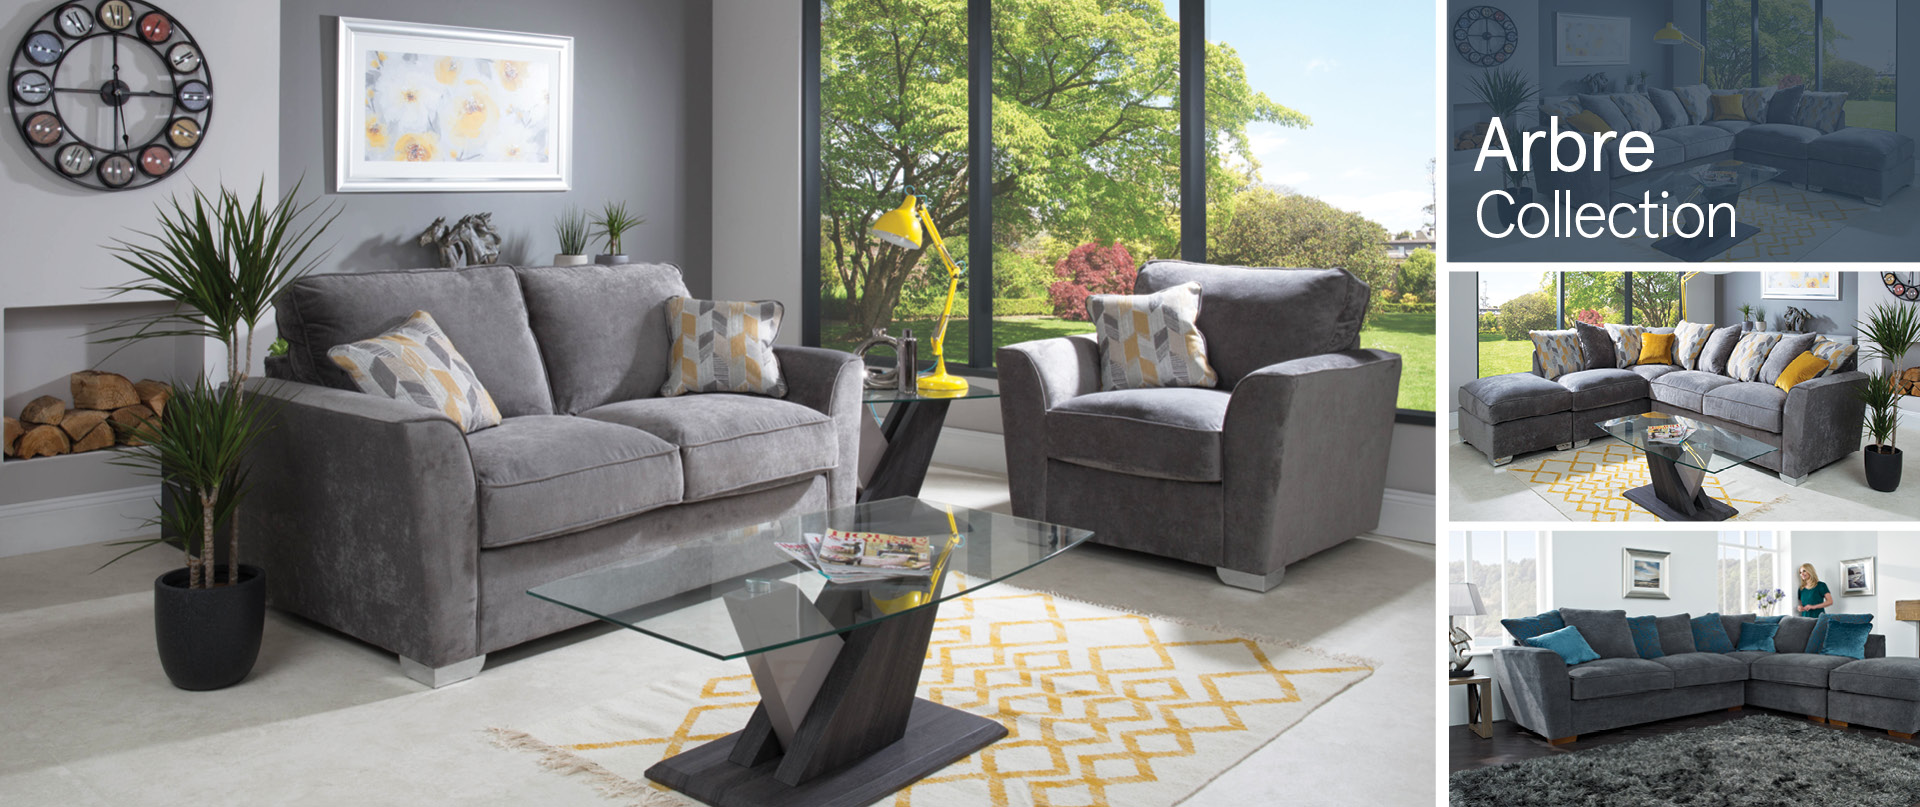 Arbre Fabric Sofa Ranges